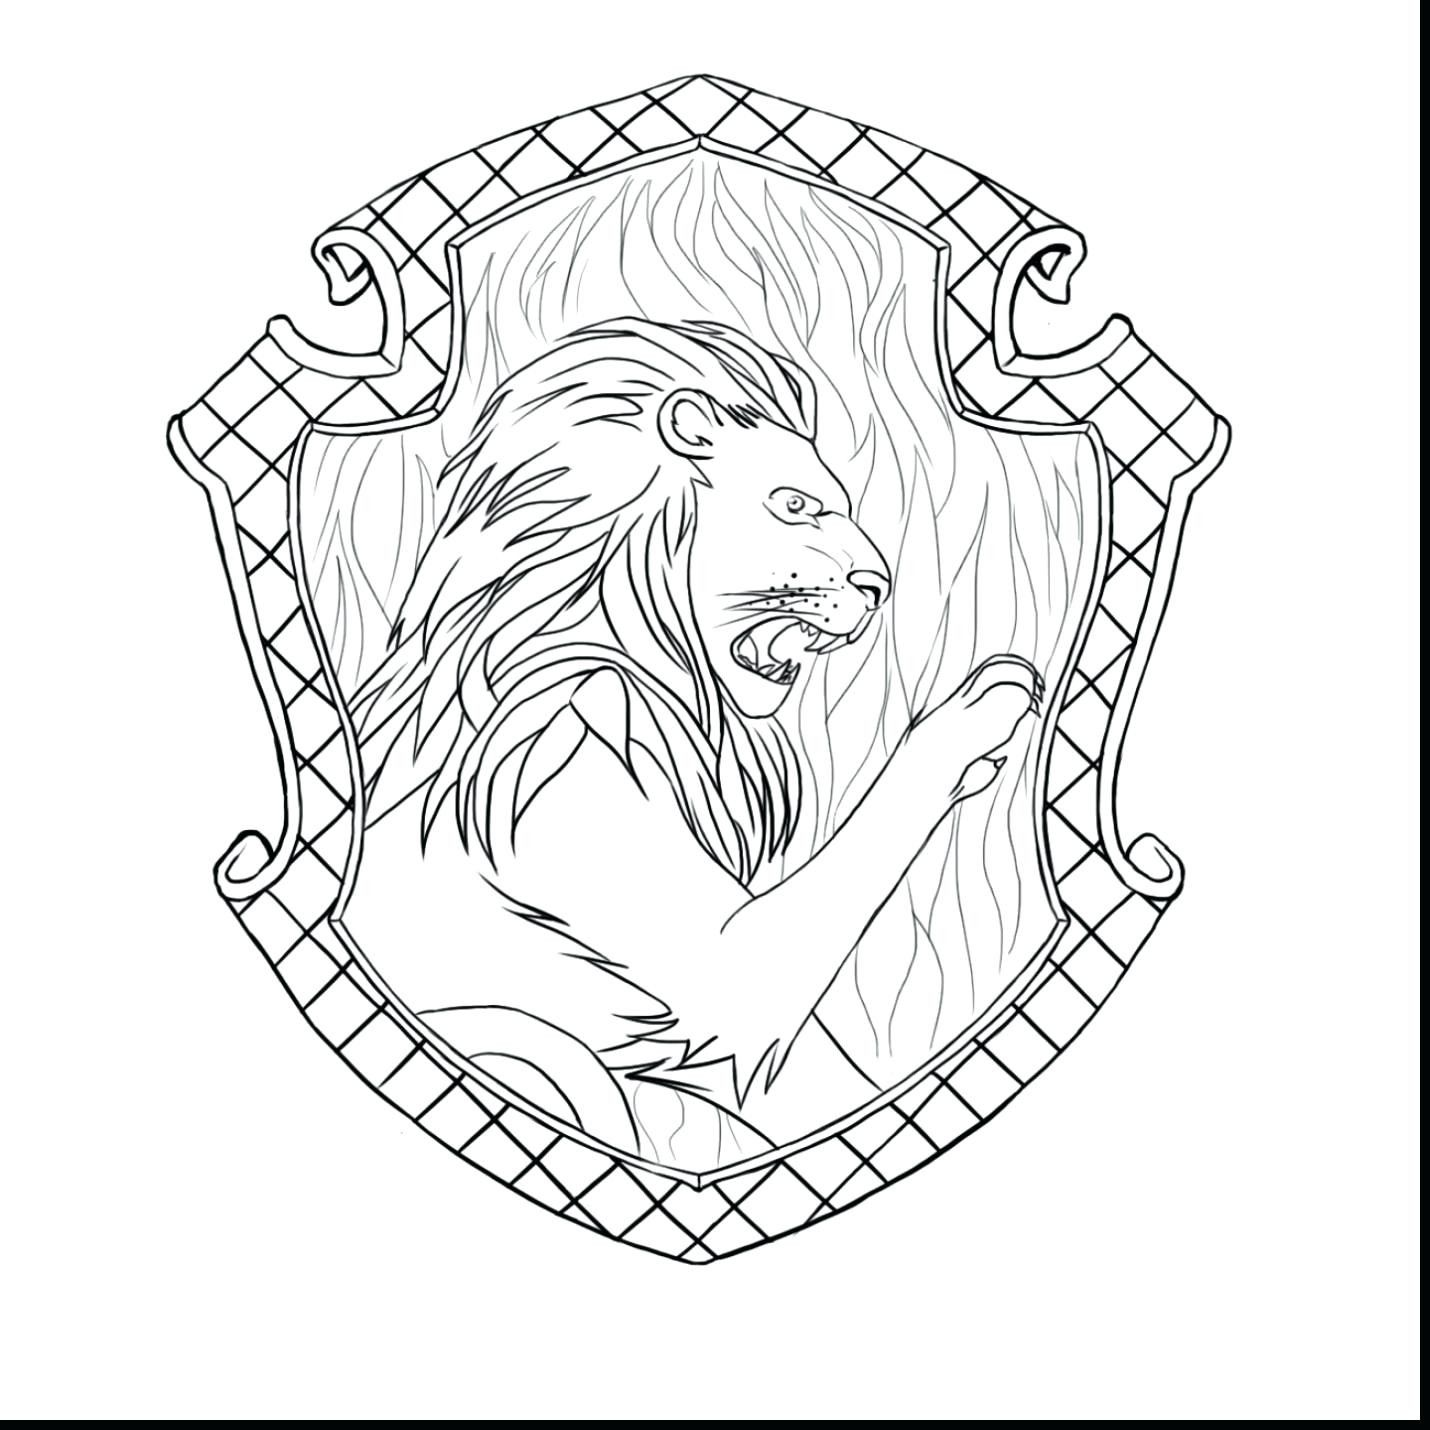 Ravenclaw Crest Coloring Pages At Getcoloringscom Free Sketch Coloring Page Ausmalbilder Wenn Du Mal Buch Ausmalen